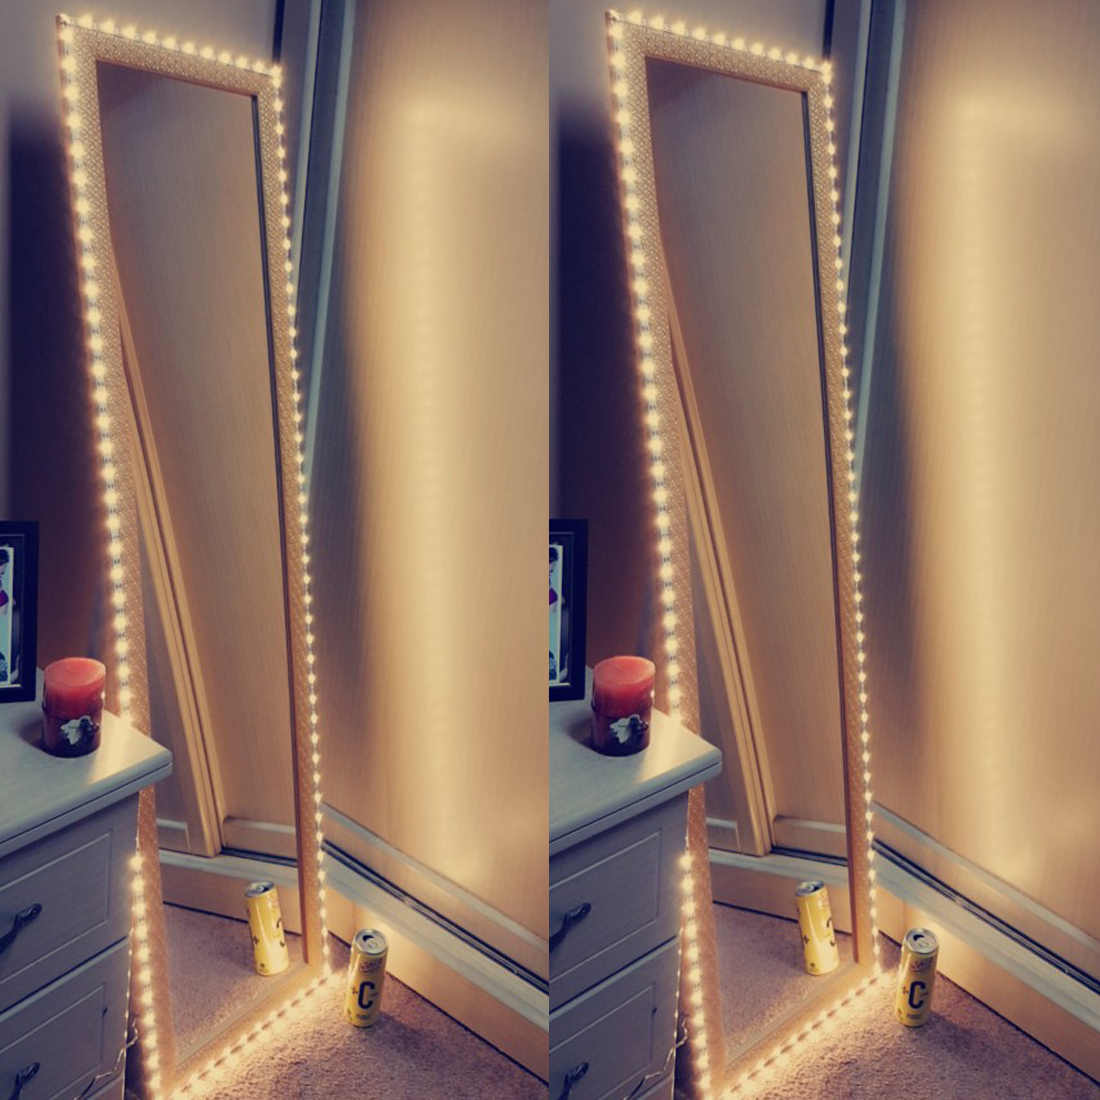 Vanity Makeup Mirror Light 5V USB LED Flexible Tape USB Cable Powered Dressing mirror Lamp Decor 0.5m -5m